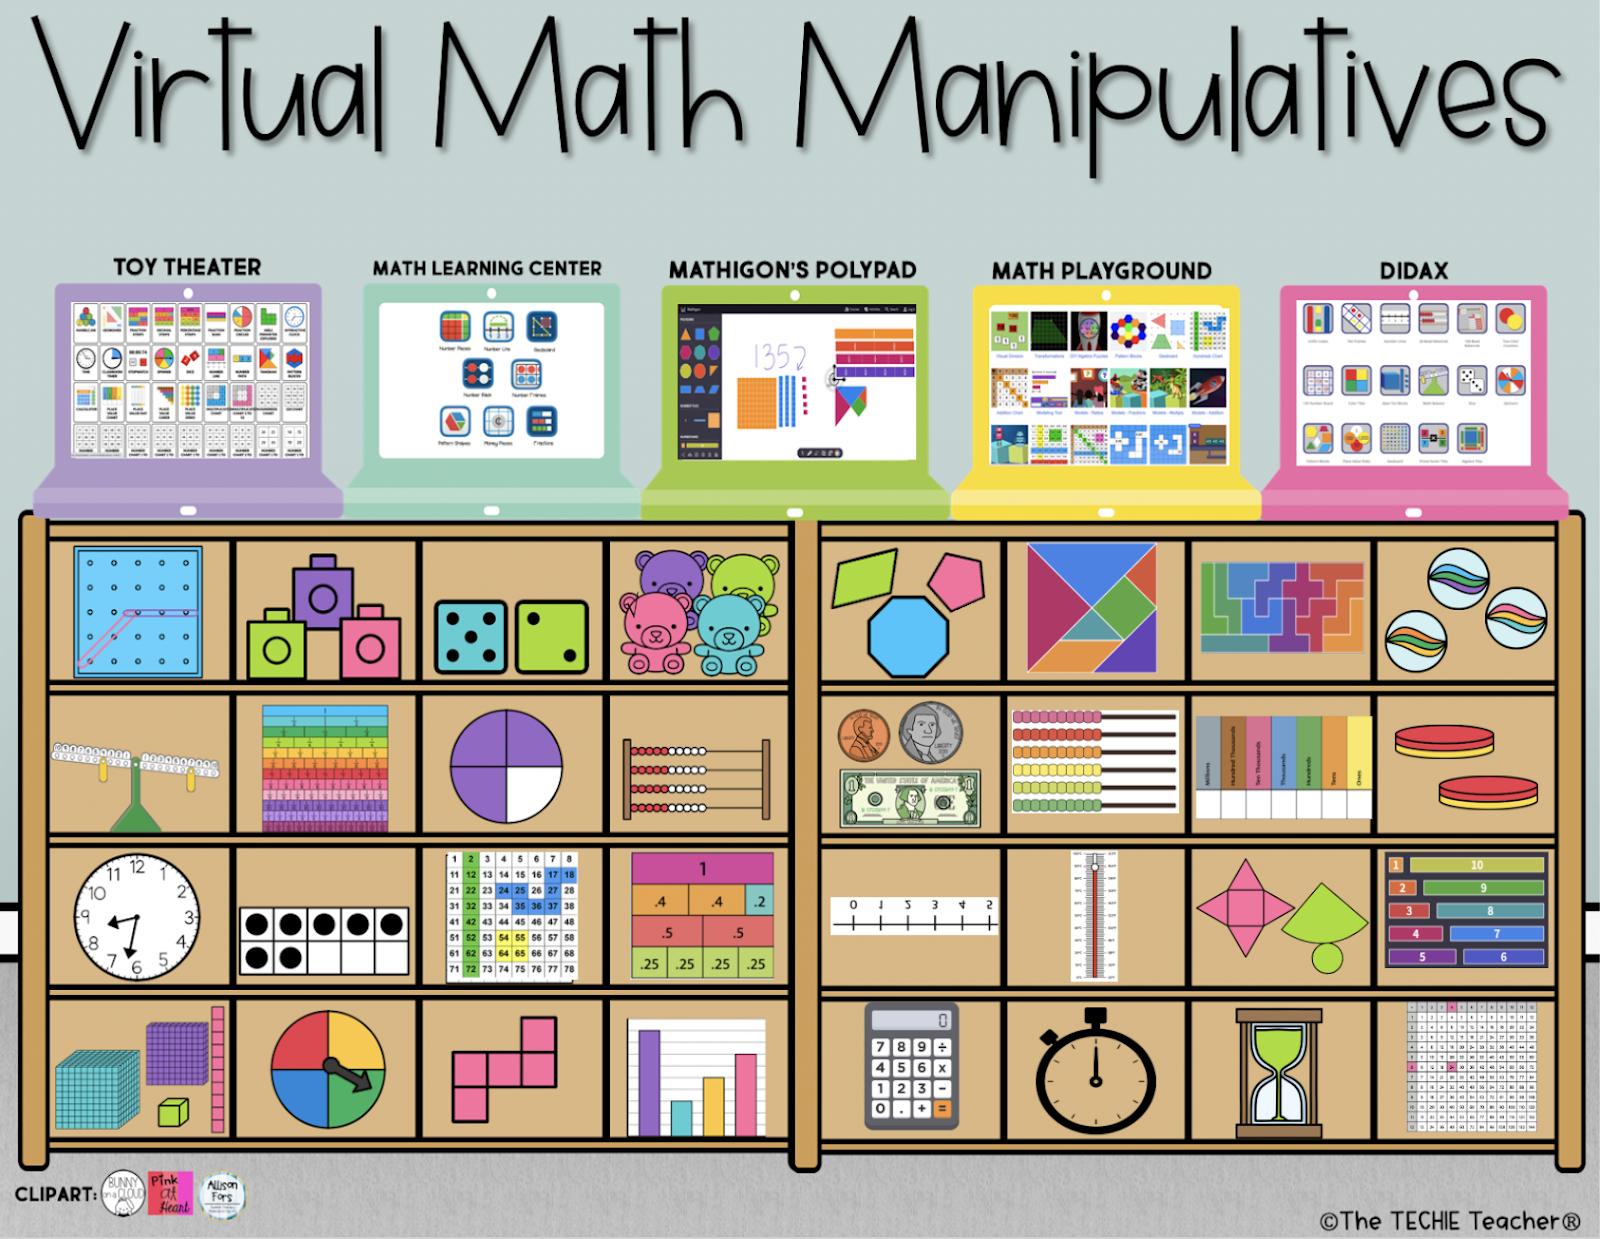 Come grab this free resource that is a collection of my favorite virtual math manipulatives!